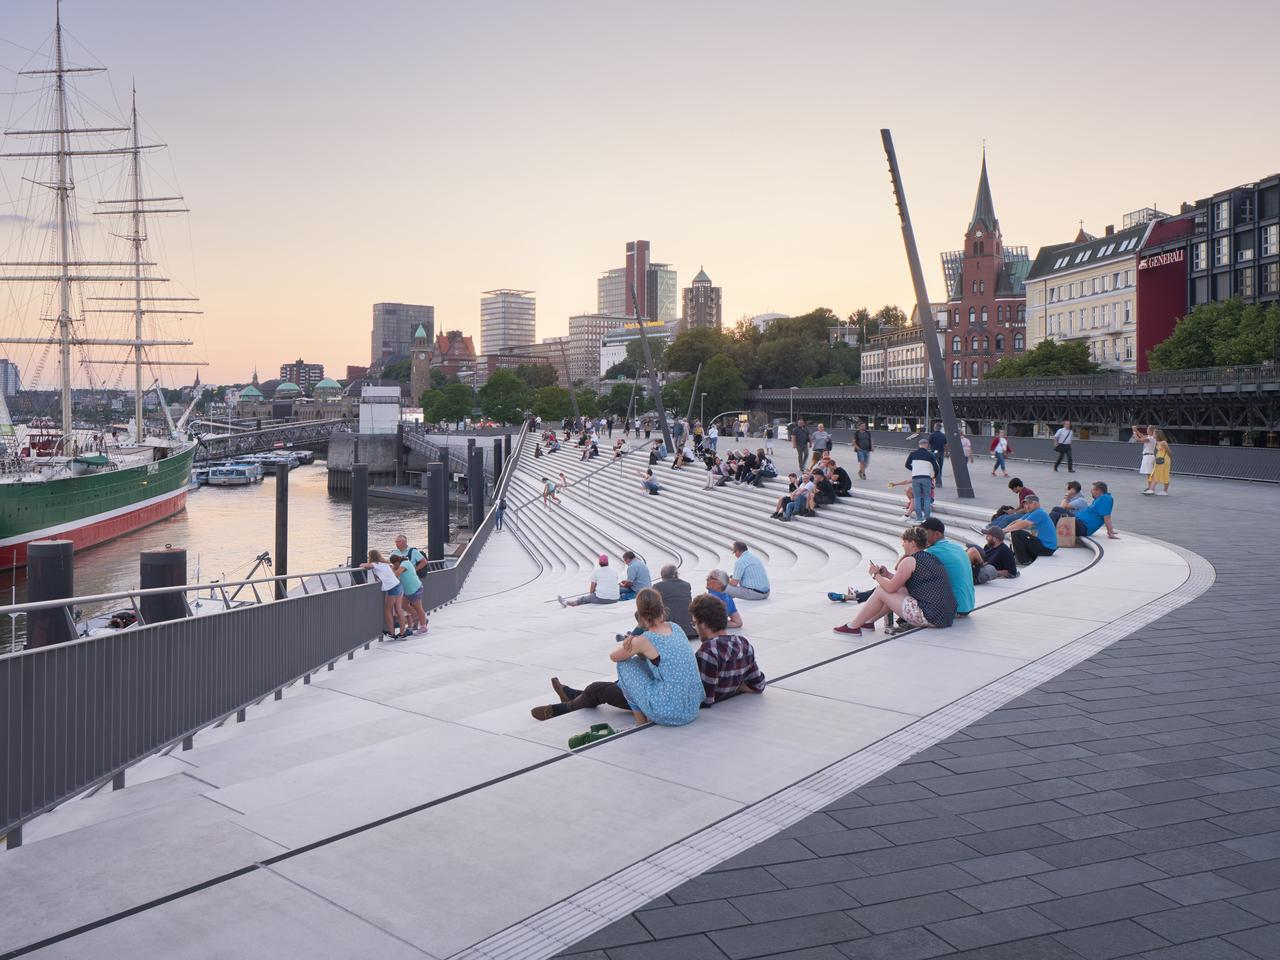 The Niederhafen River Promenade project is the result of an architecture competition